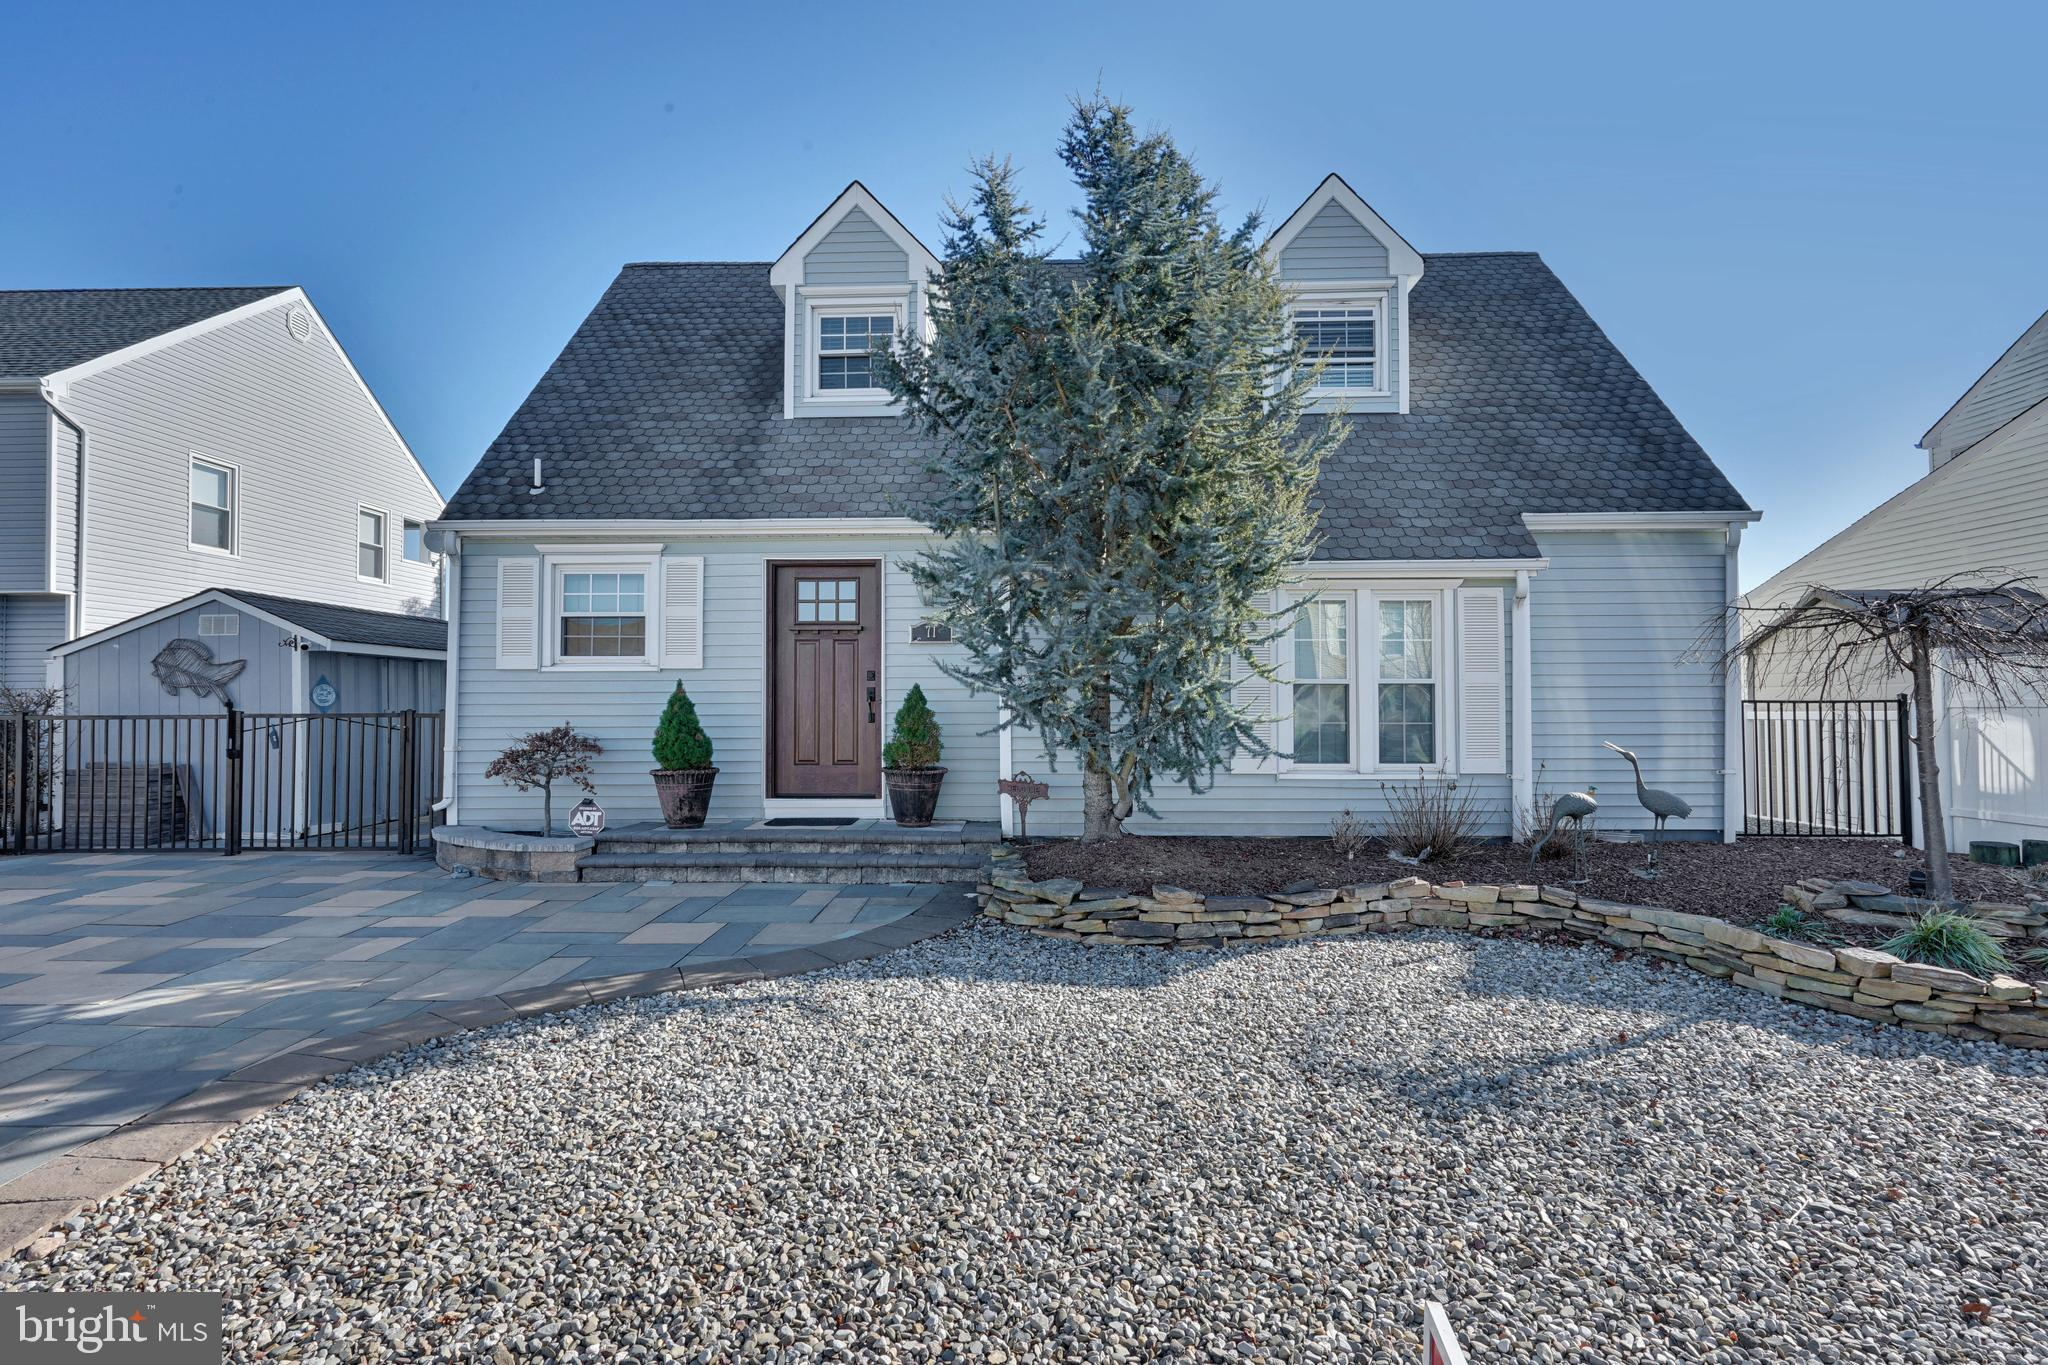 71 STORM JIB COURT, BAYVILLE, NJ 08721